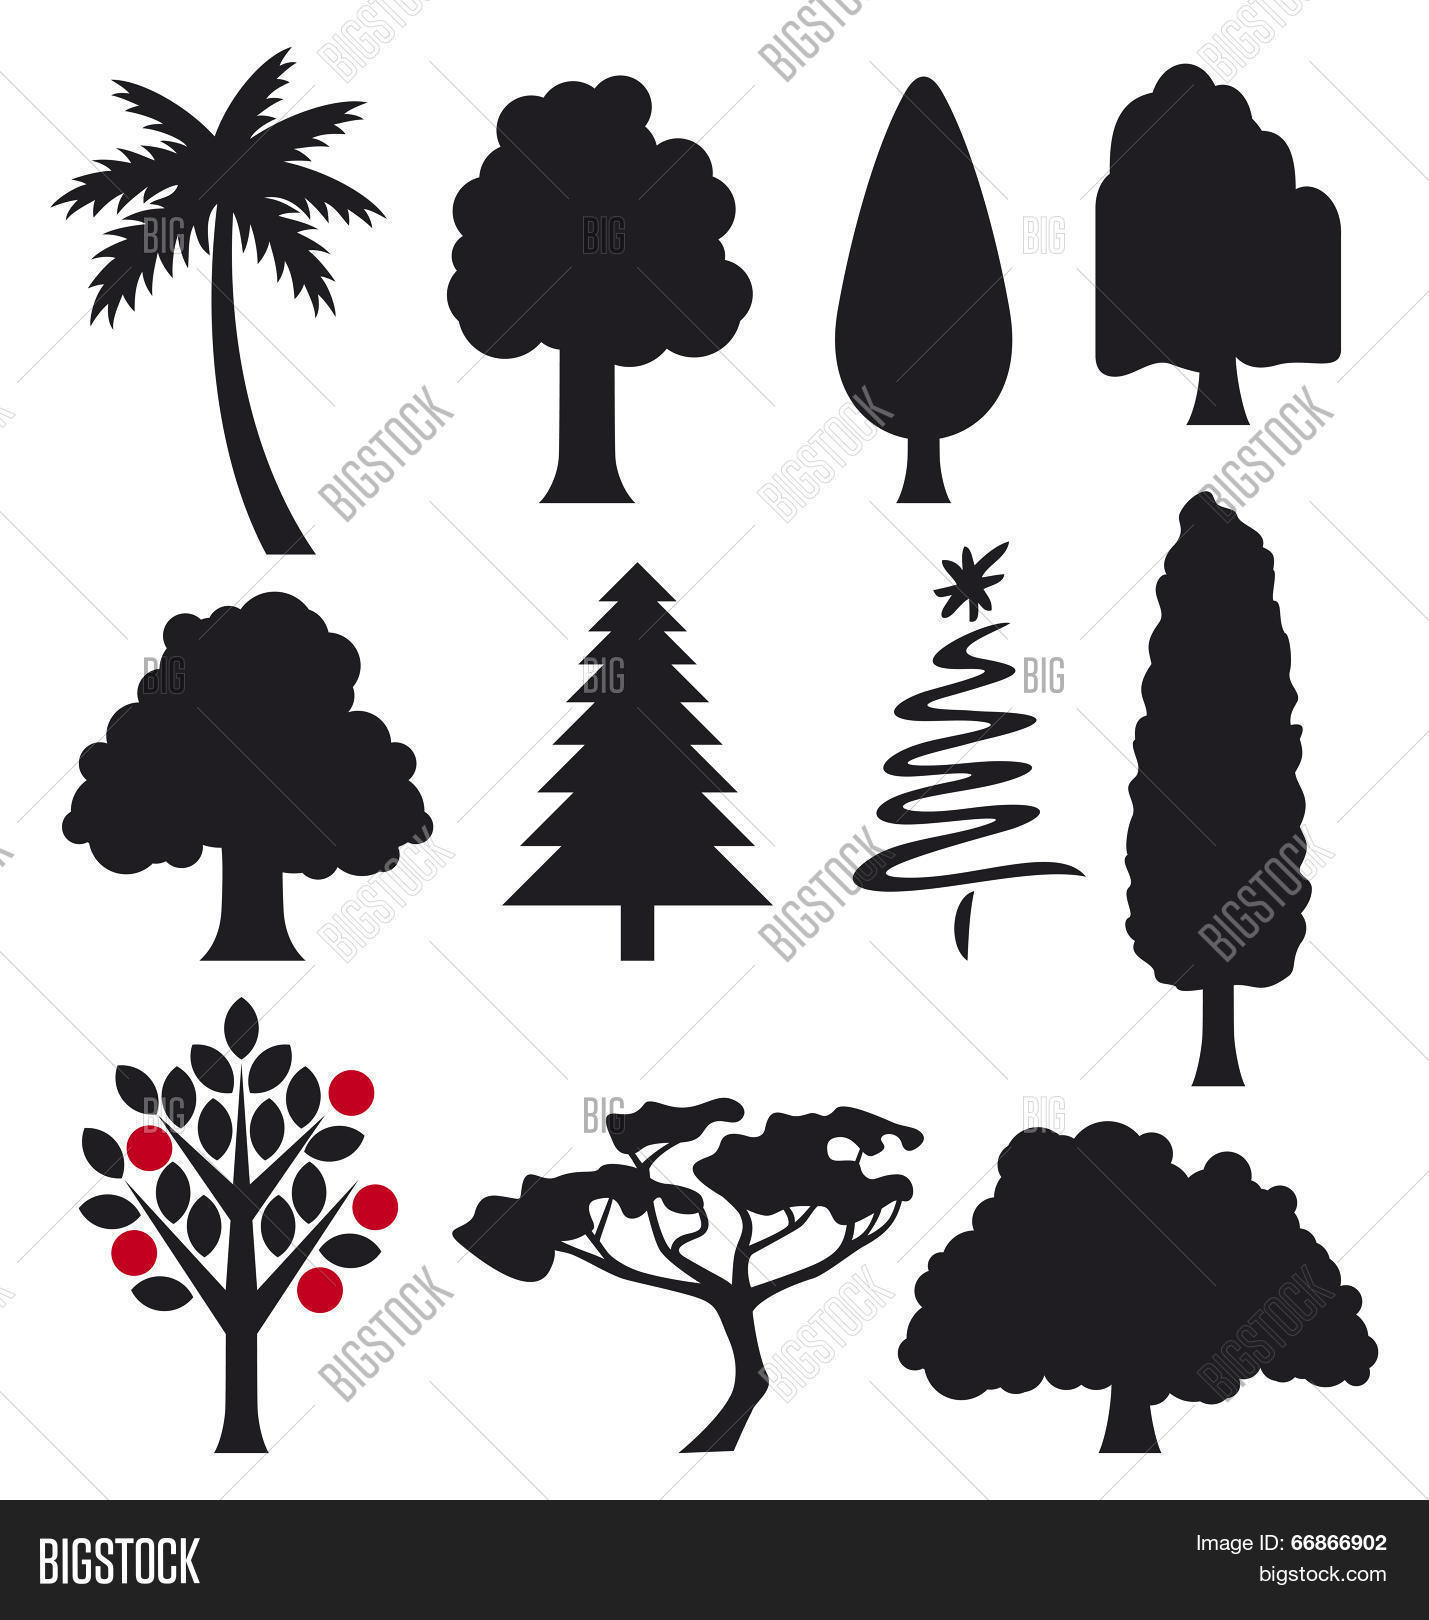 Astounding tree silhouette vector free download photographs